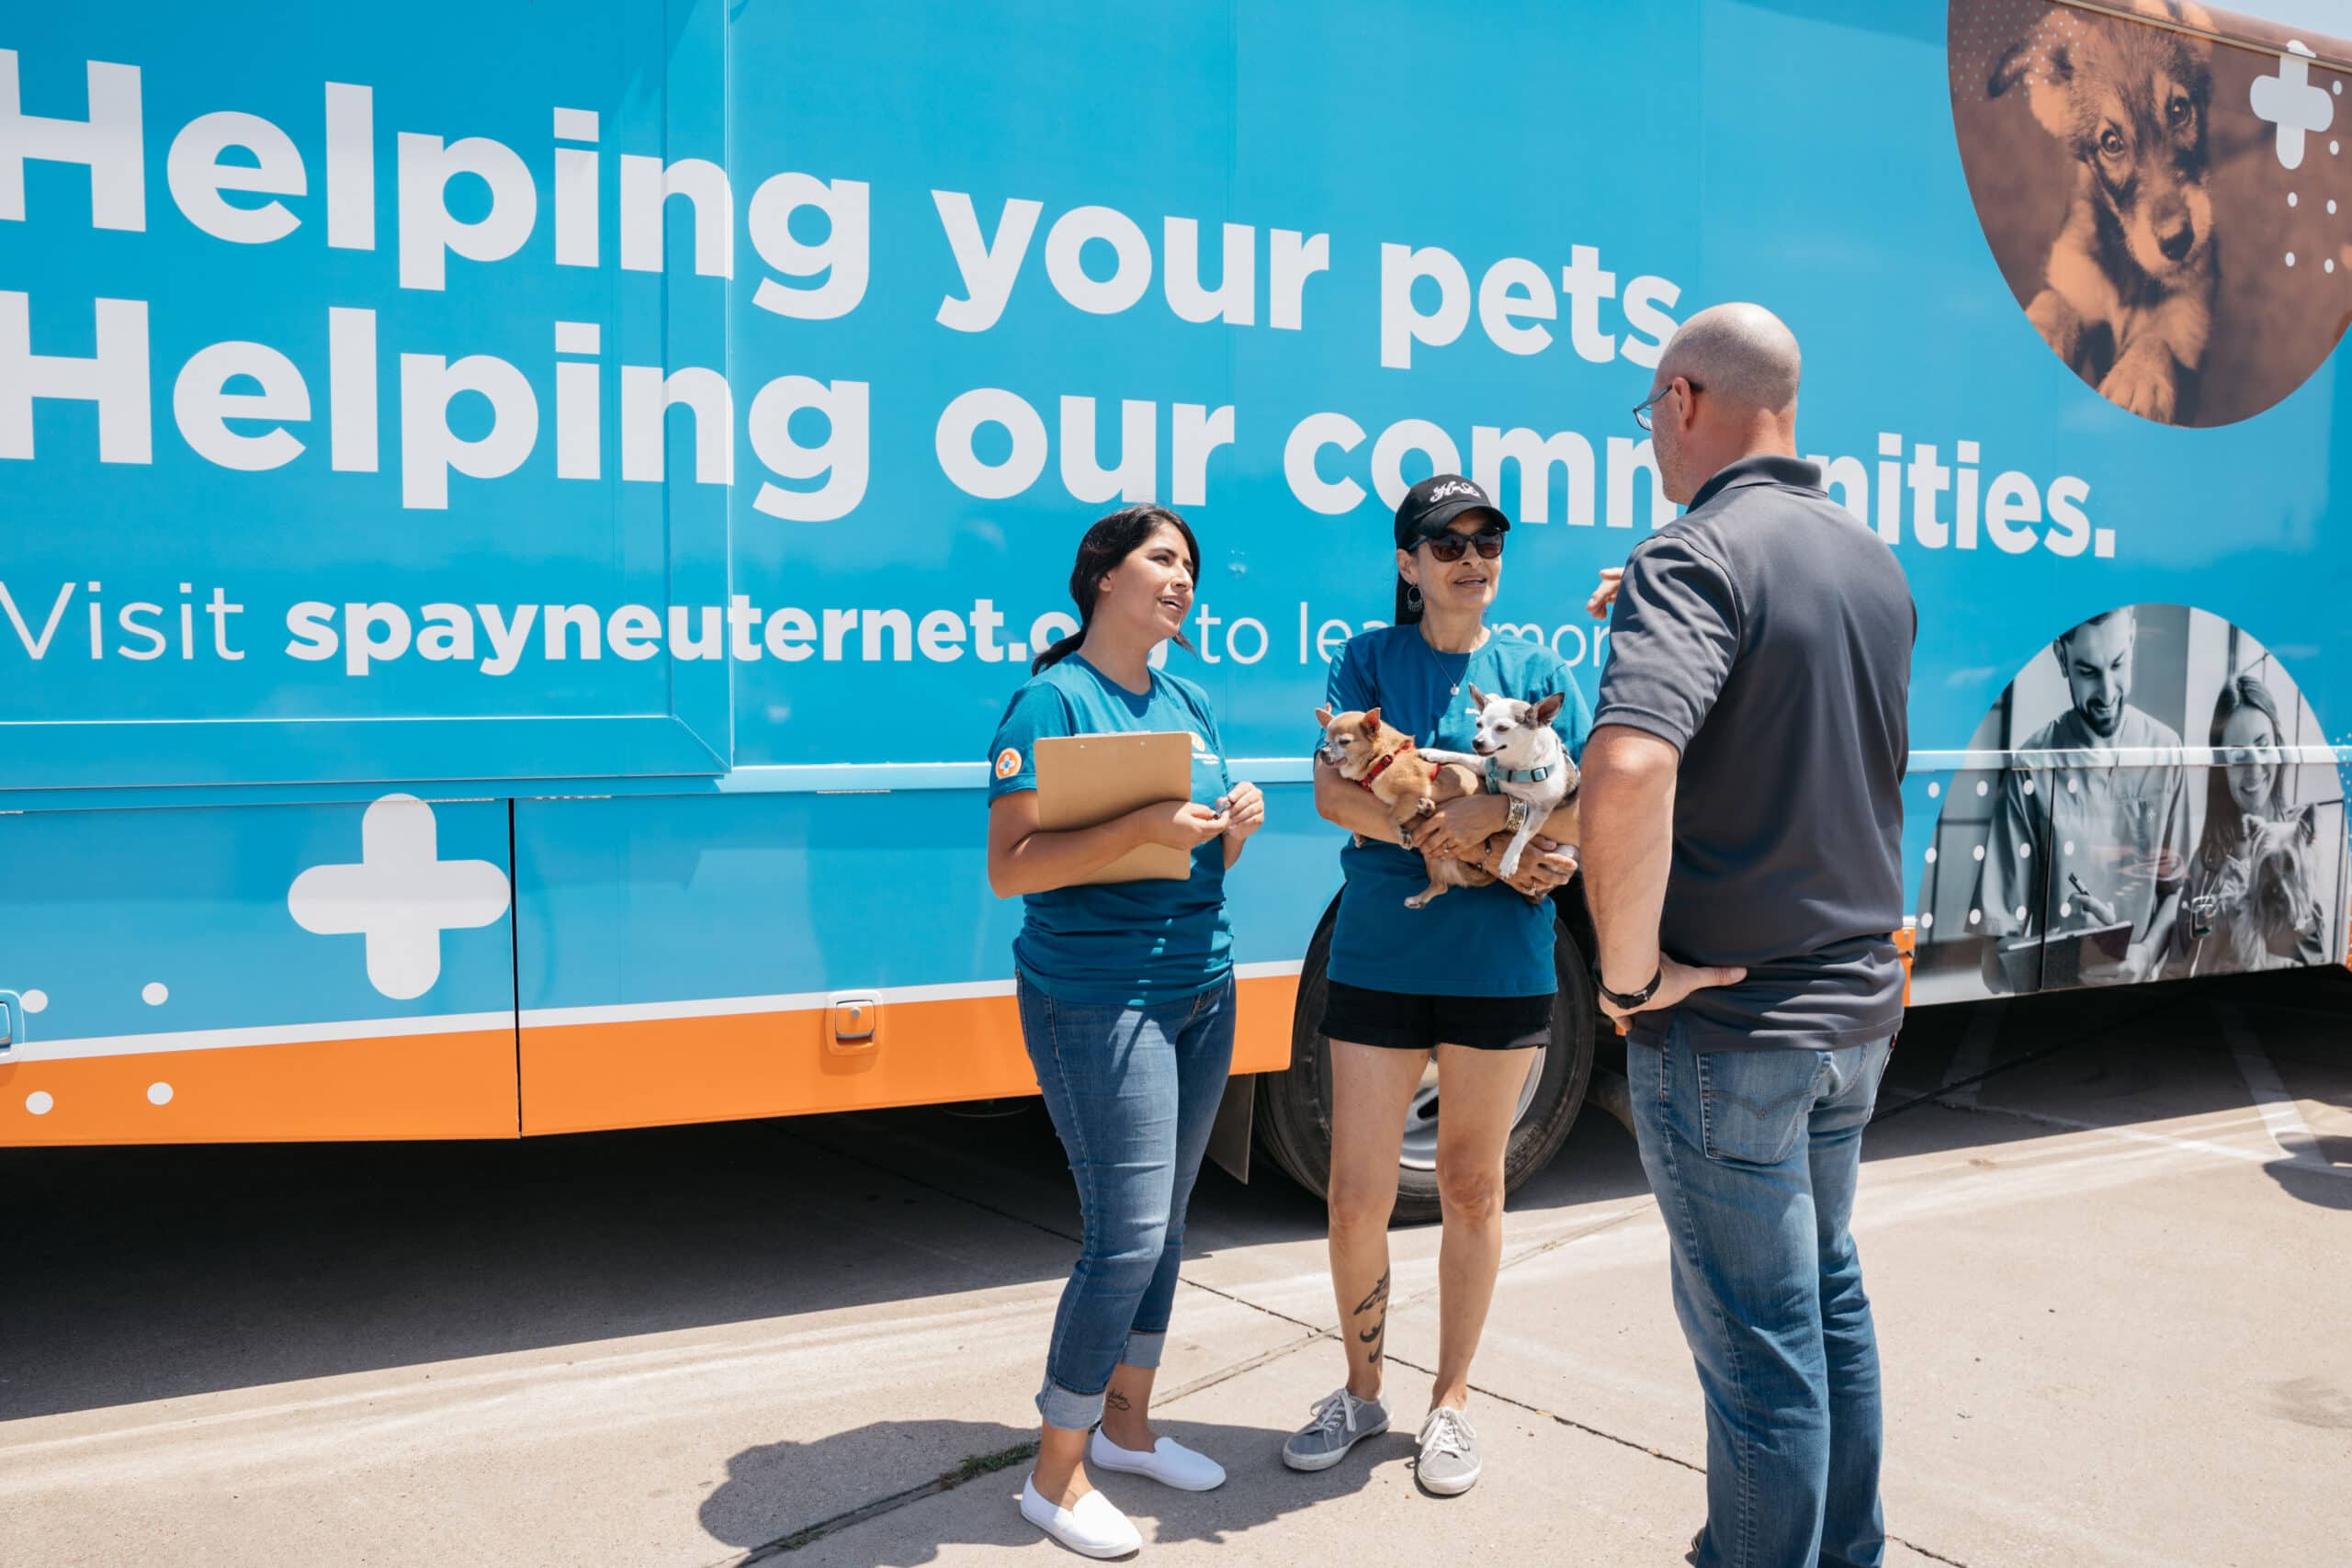 Spay neuter volunteers with mobile truck